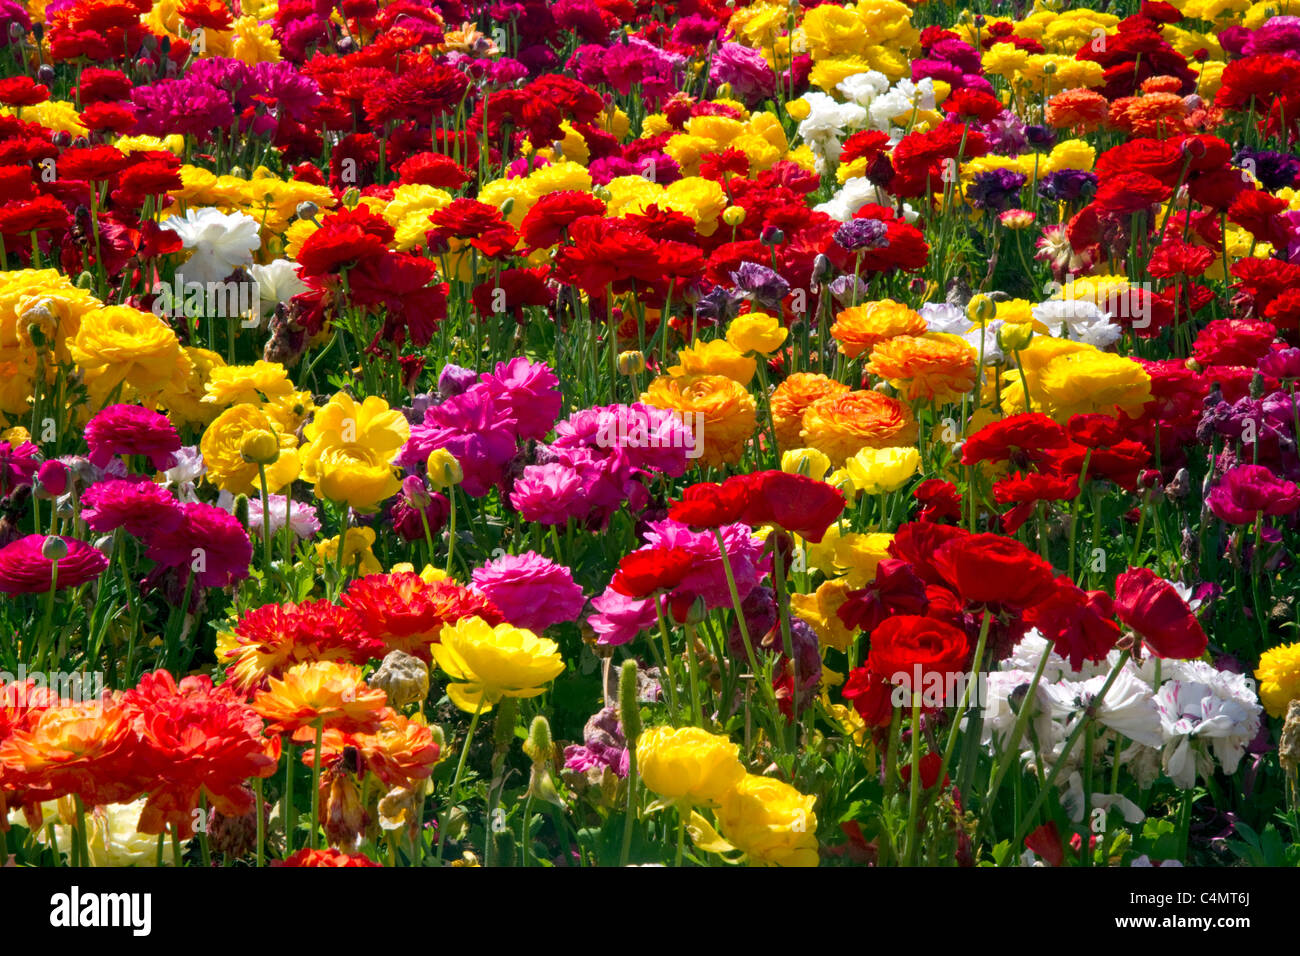 The Flower Fields at Carlsbad California USA Stock Royalty Free Imag